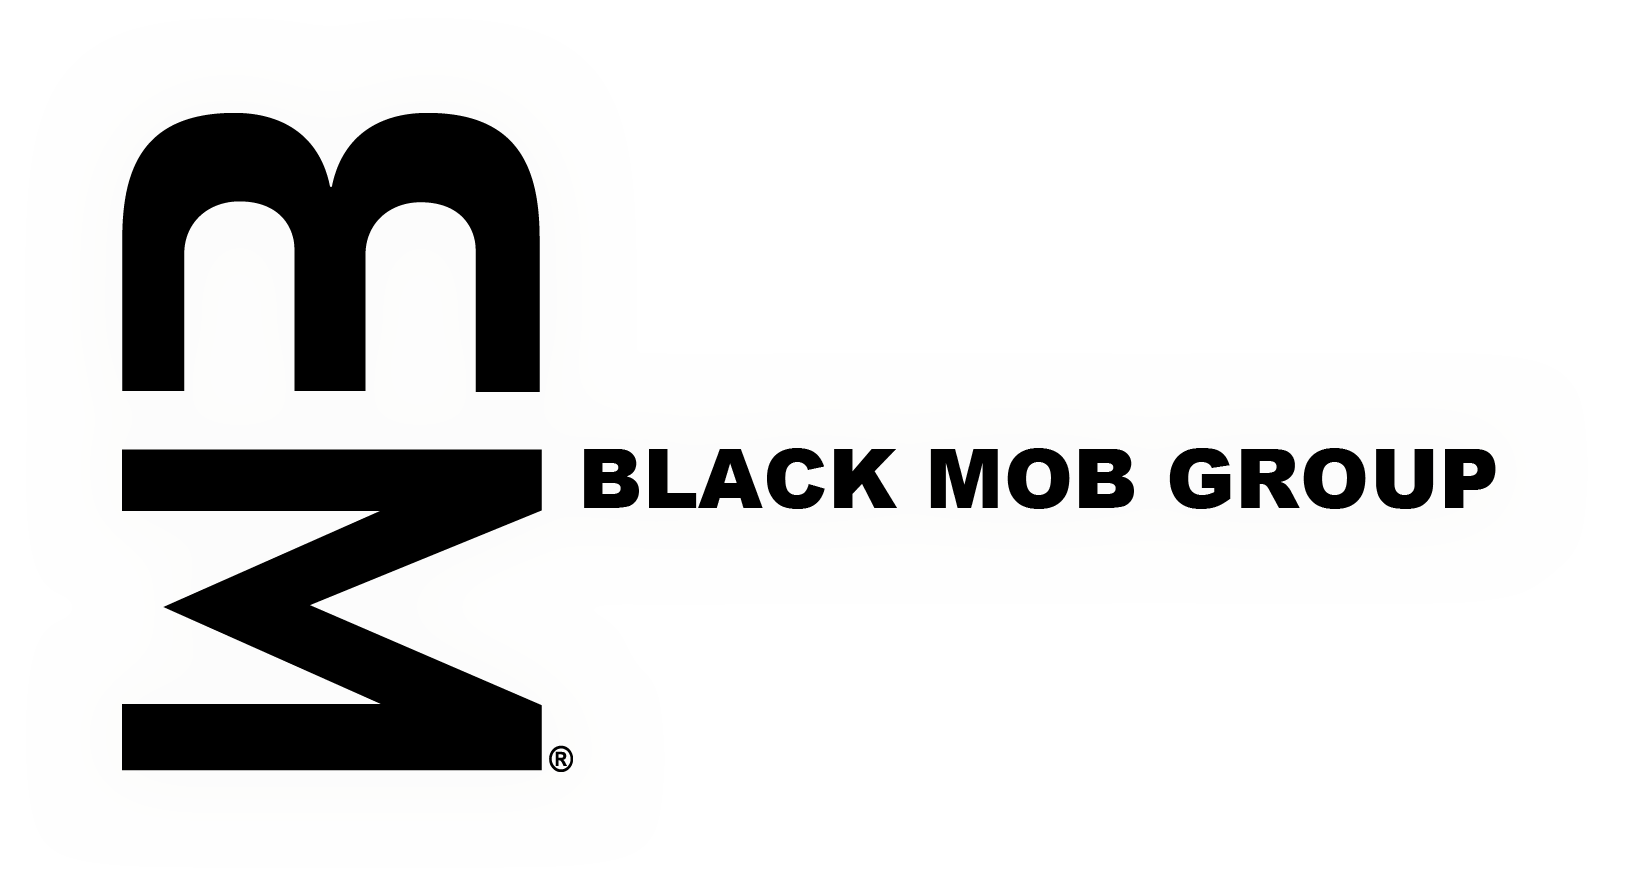 Black Mob Group